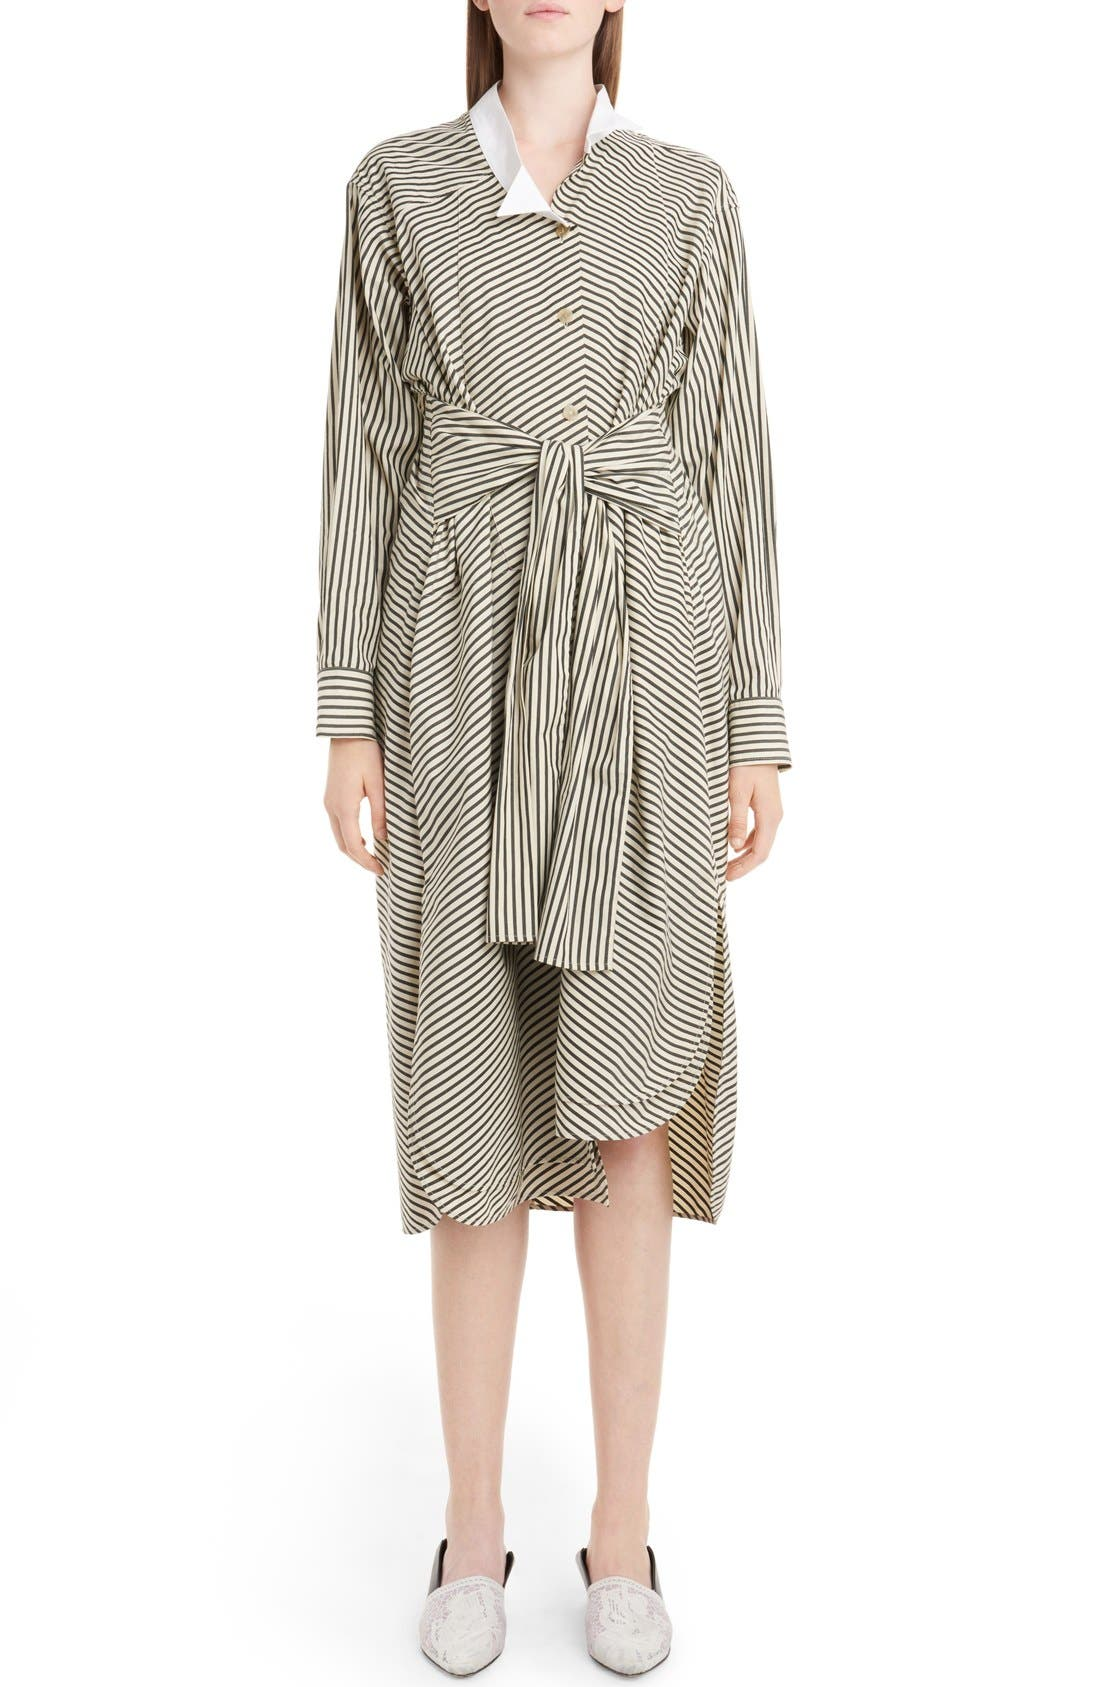 LOEWE Stripe Cotton Dress